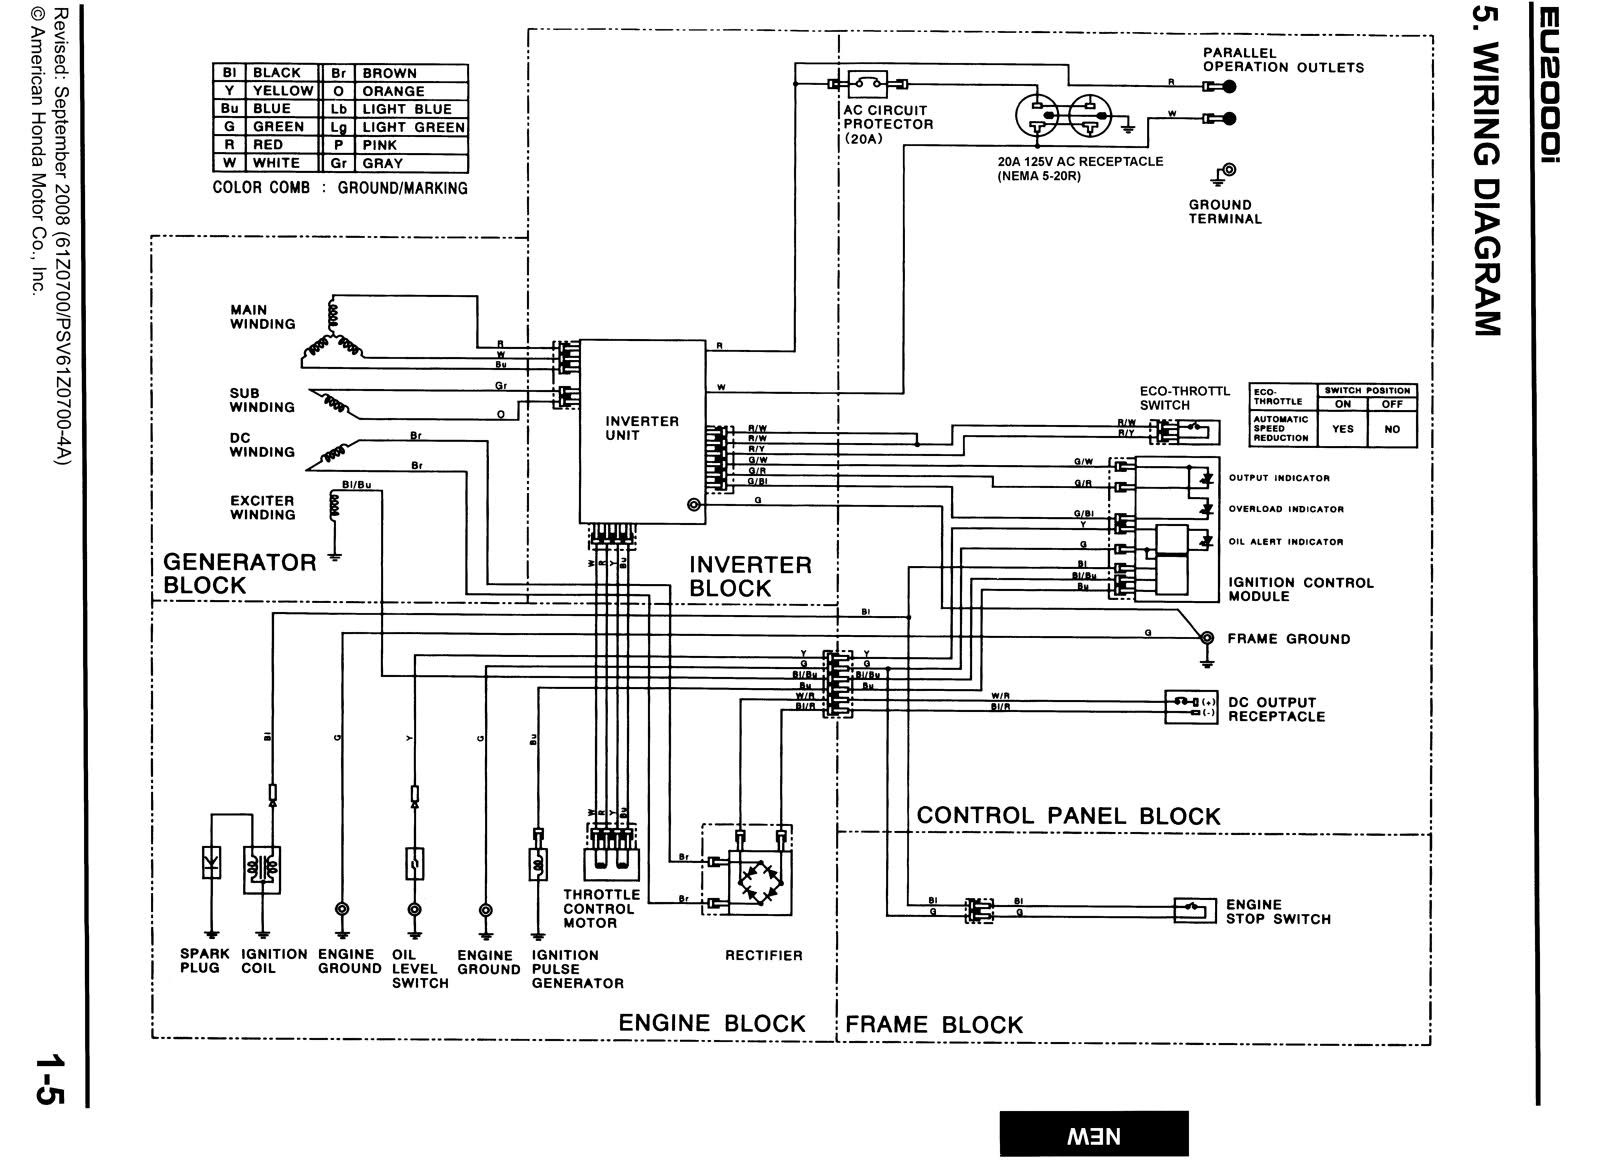 Holiday Rambler Wiring Diagram | Camper To Glamper | Pinterest - Gr Trailer Wiring Diagram